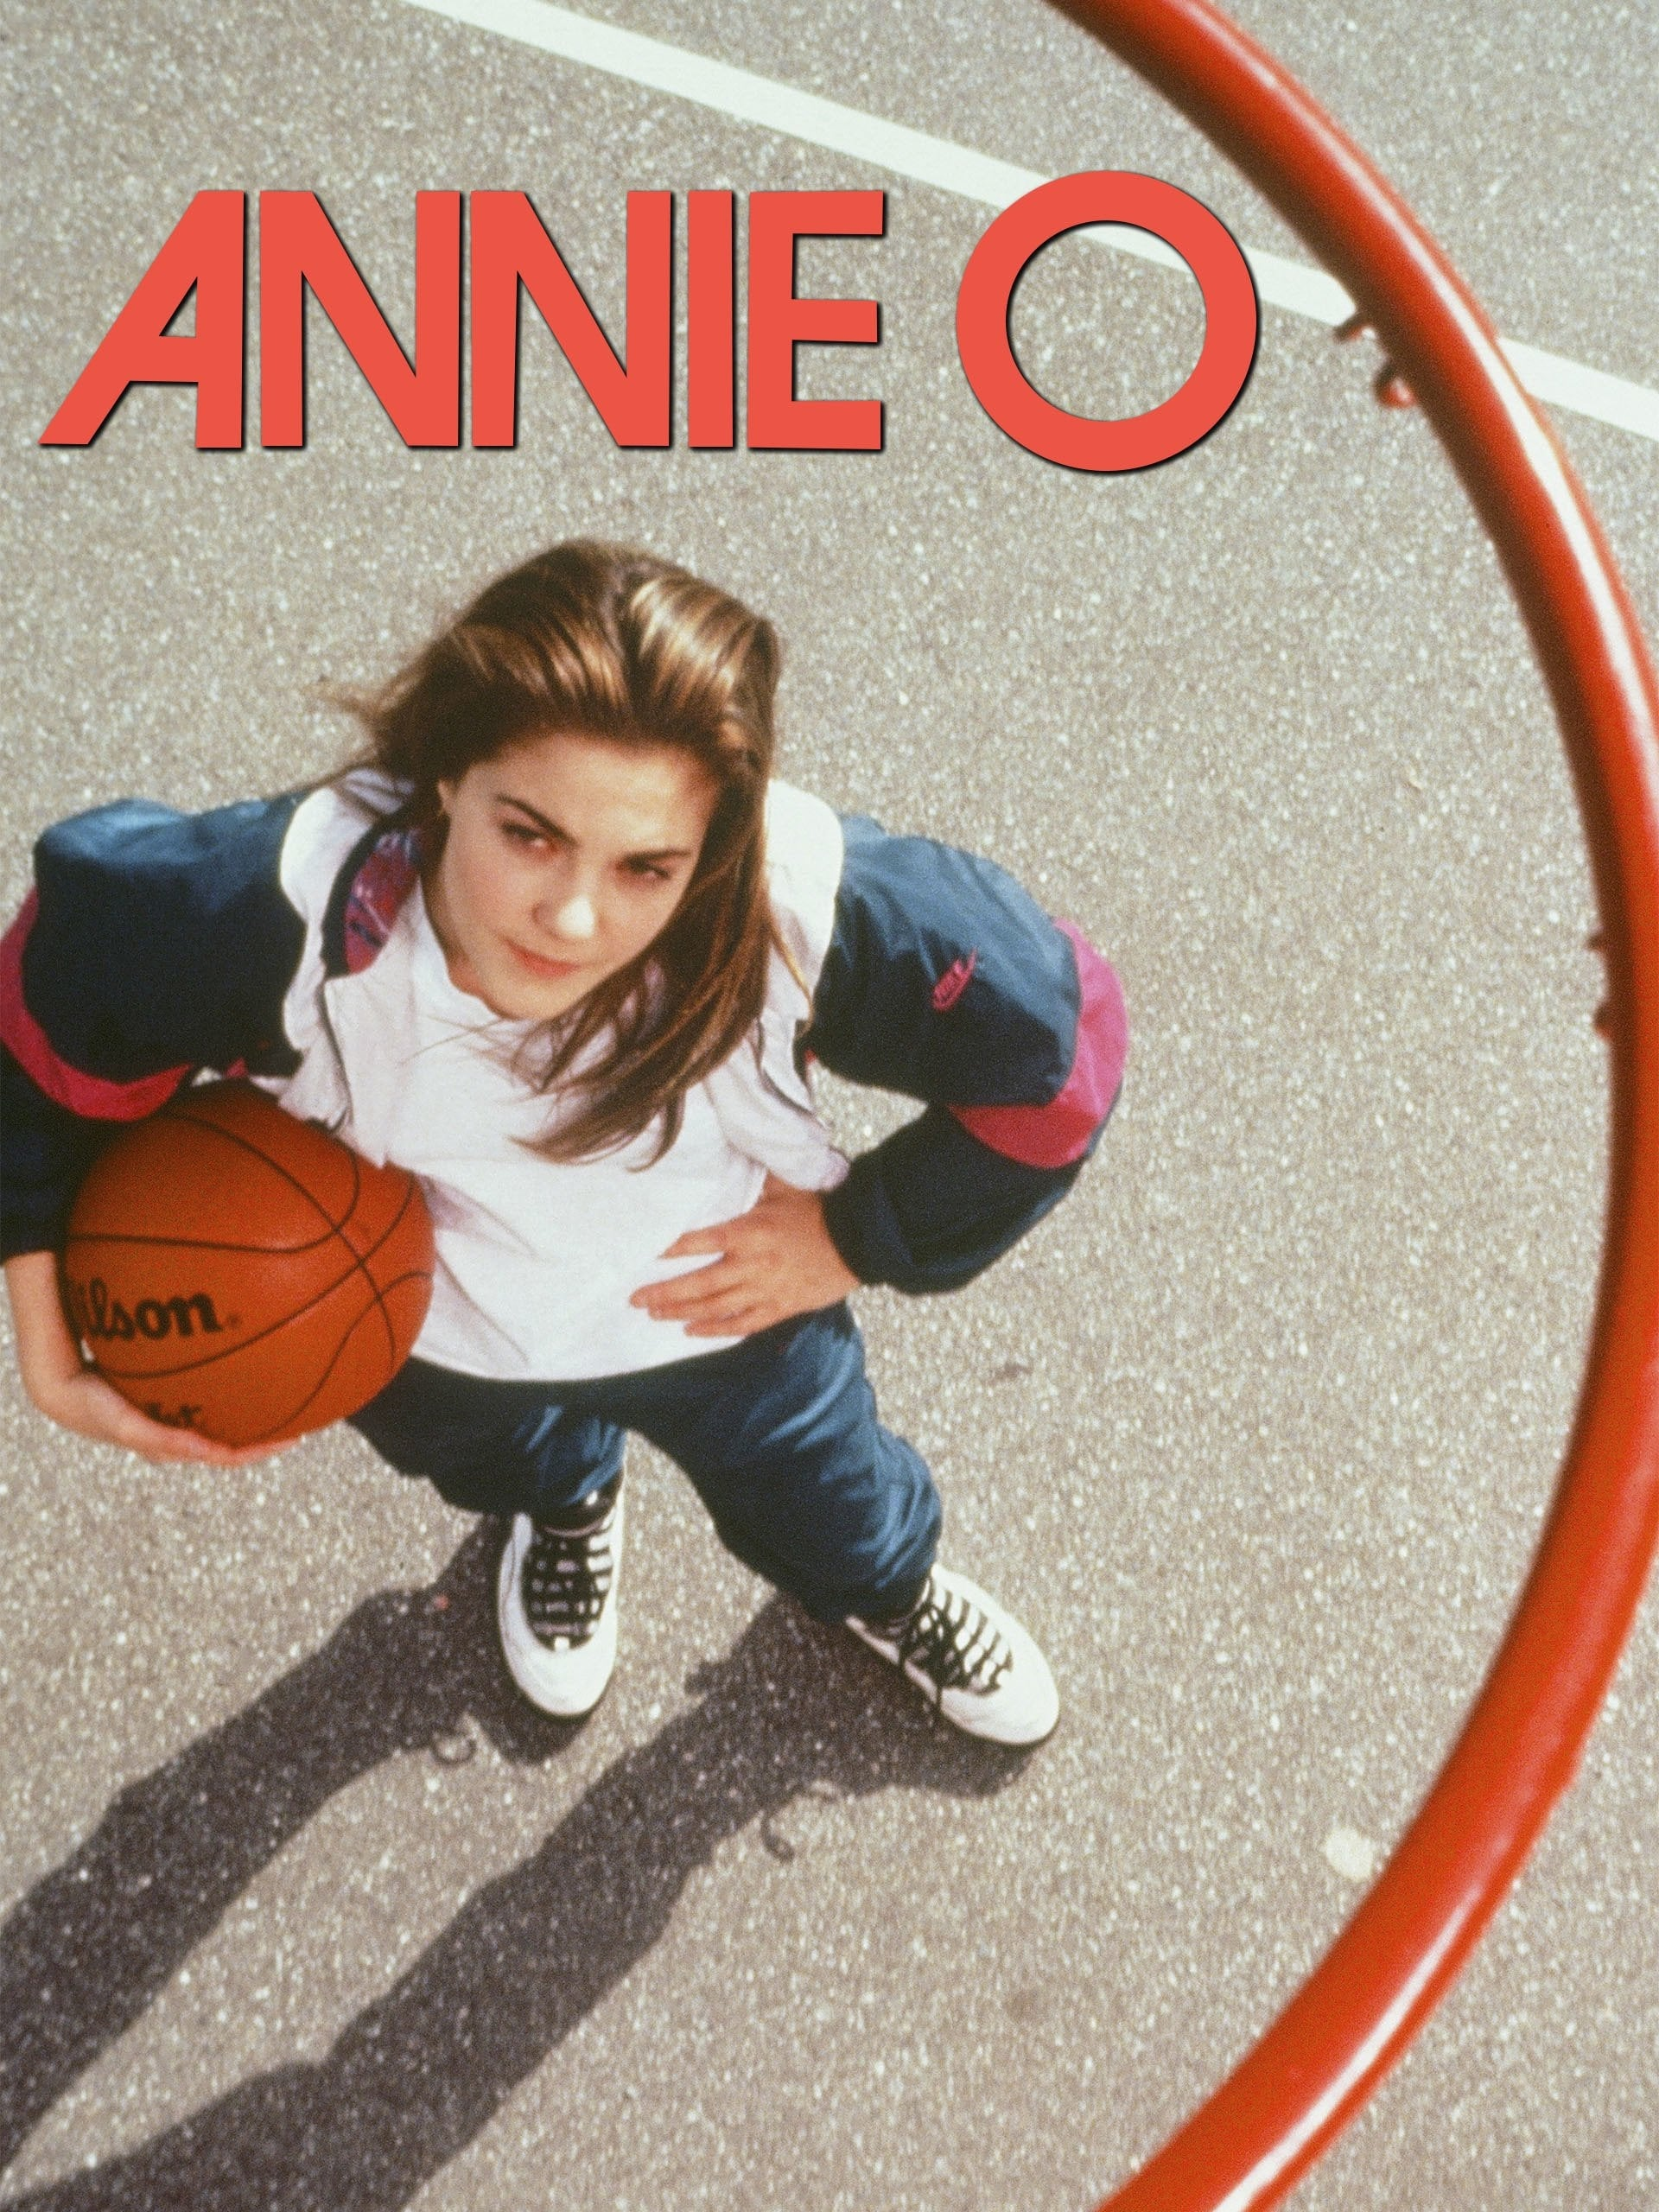 Annie O on FREECABLE TV